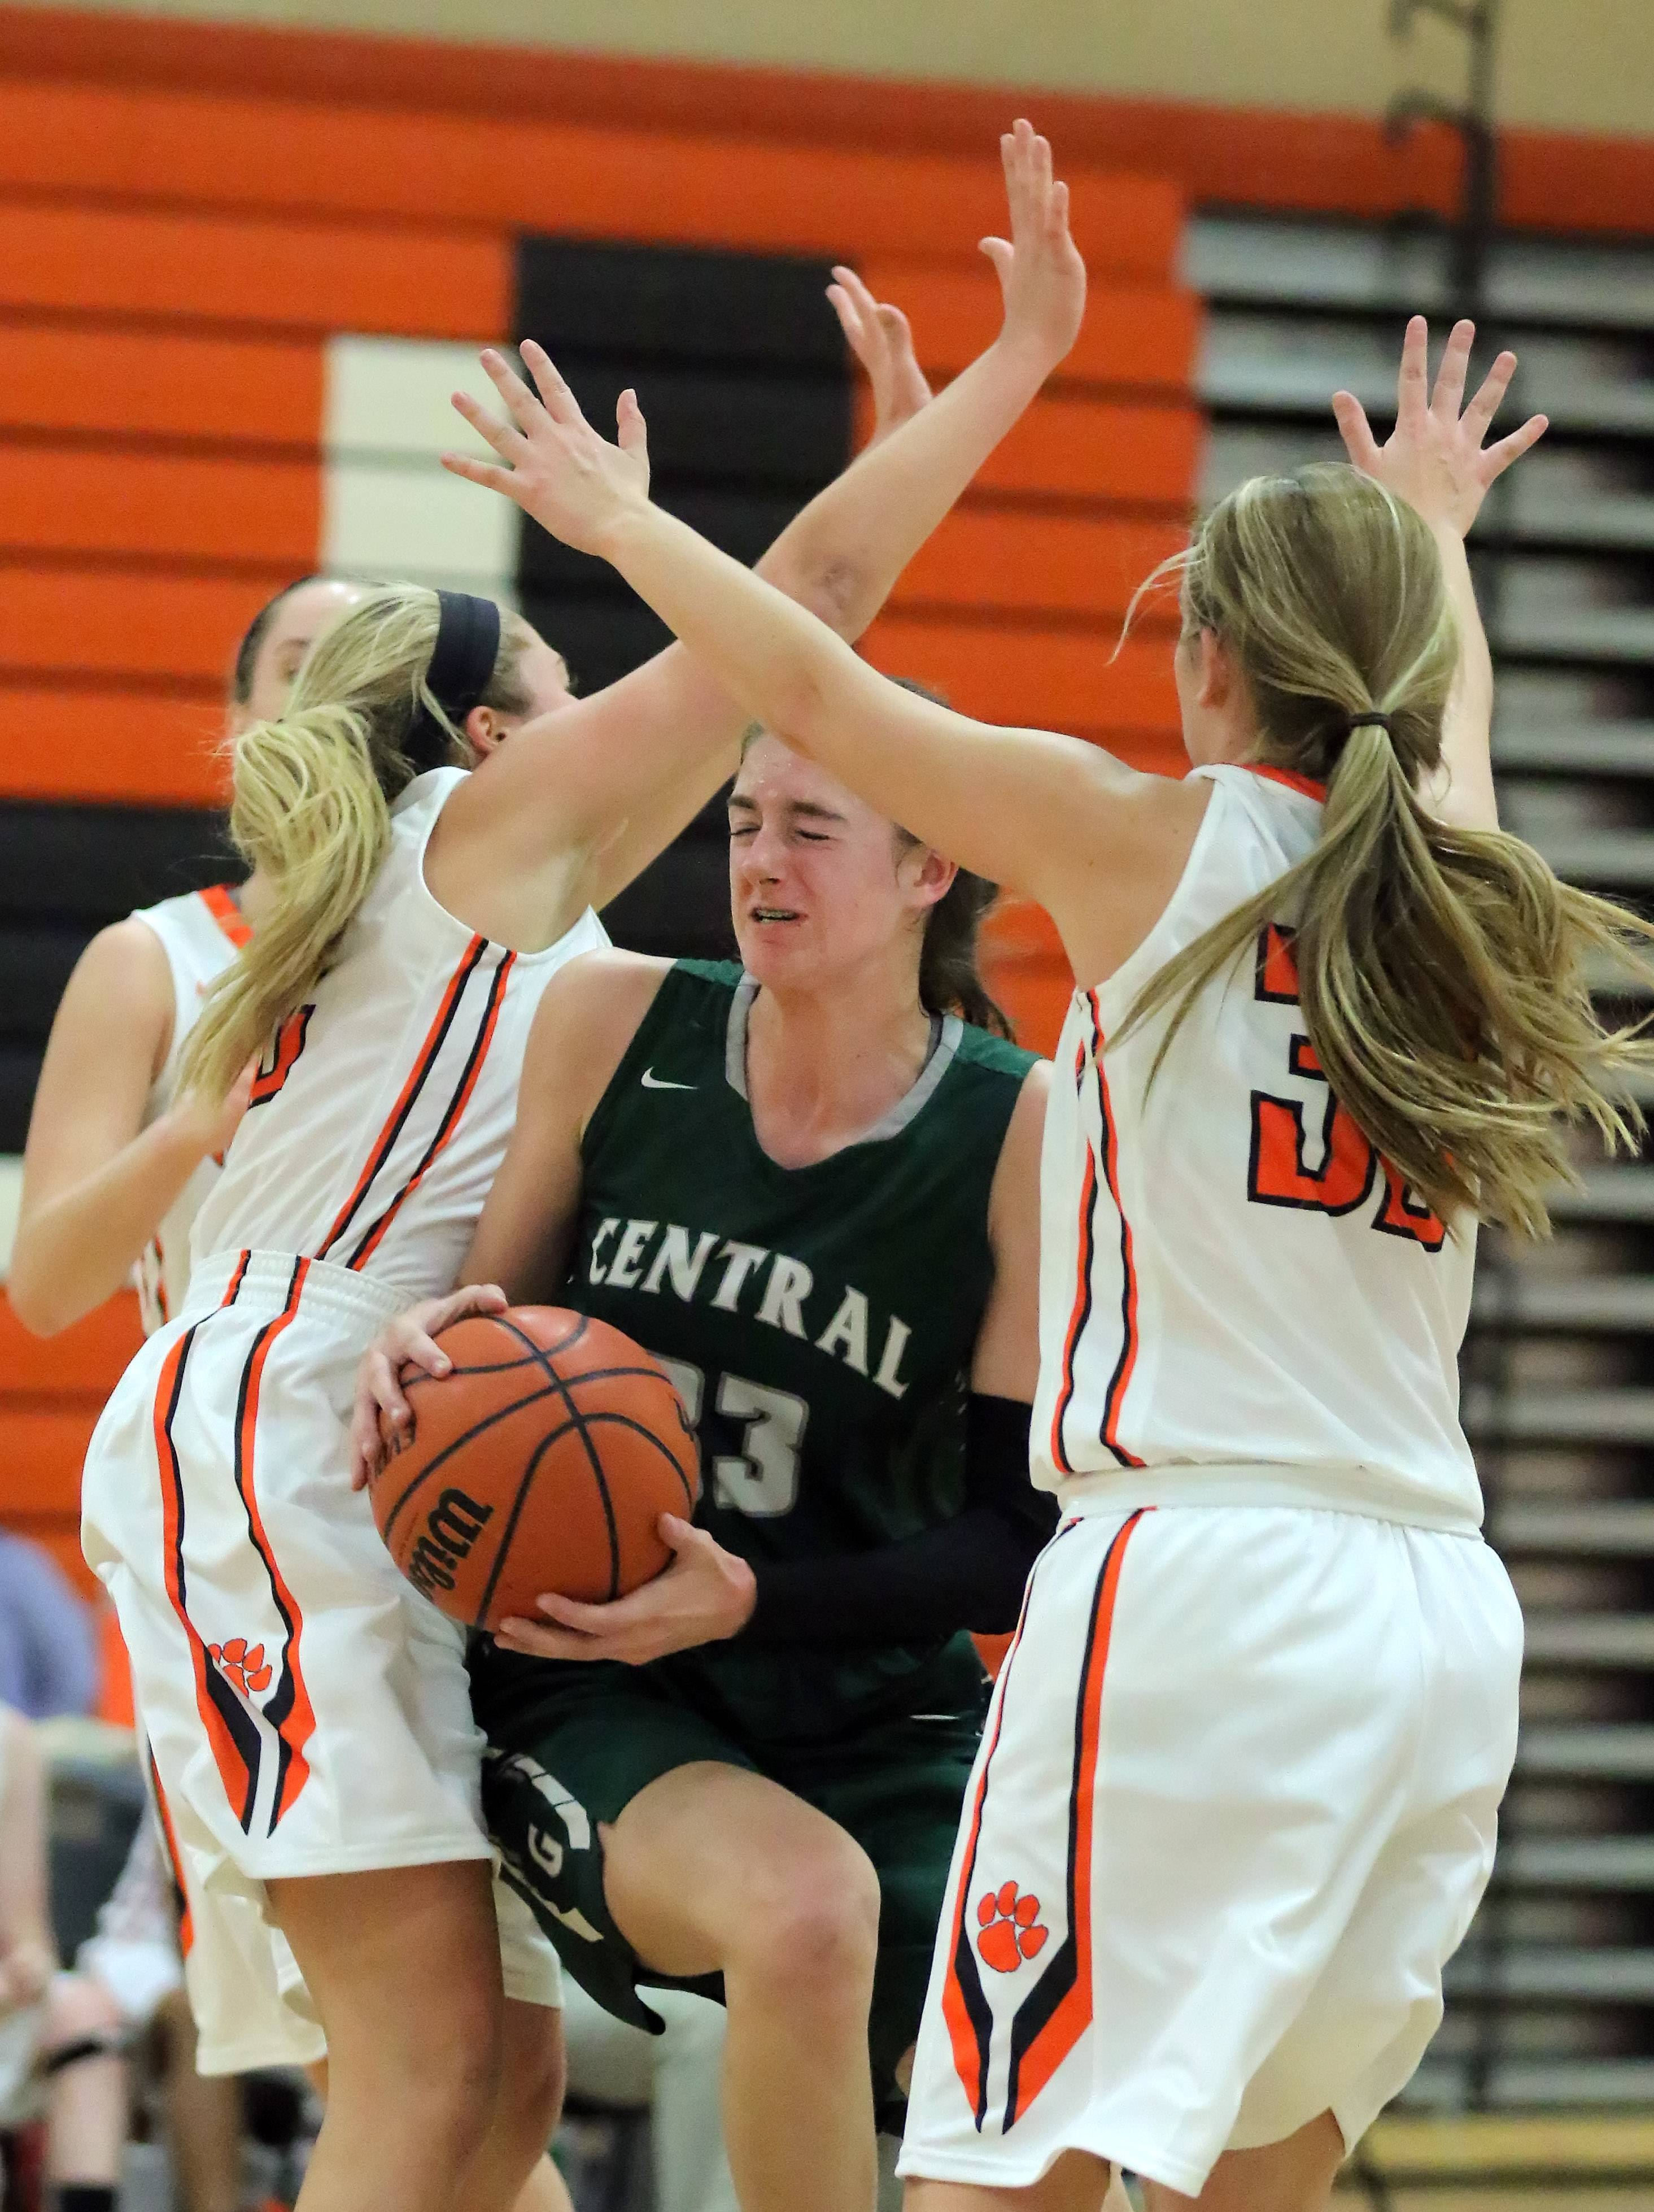 Grayslake Central's Kate Bullman, center, tries to split through Libertyville's Riley Weis, left, and Caroline Frea on Tuesday night at Libertyville.